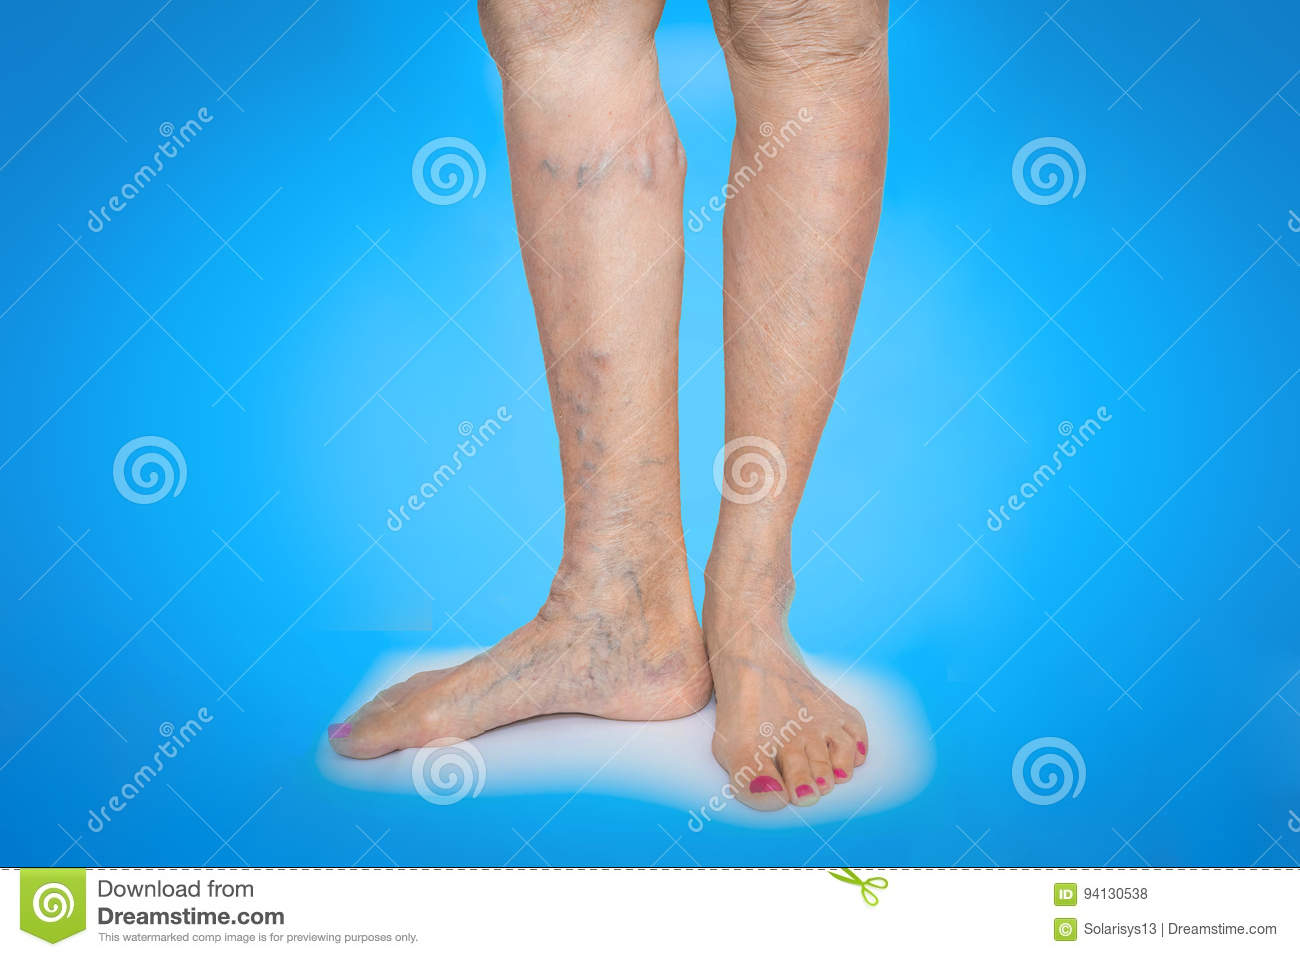 Varicose Veins On A Female Legs Stock Photo Image Of People